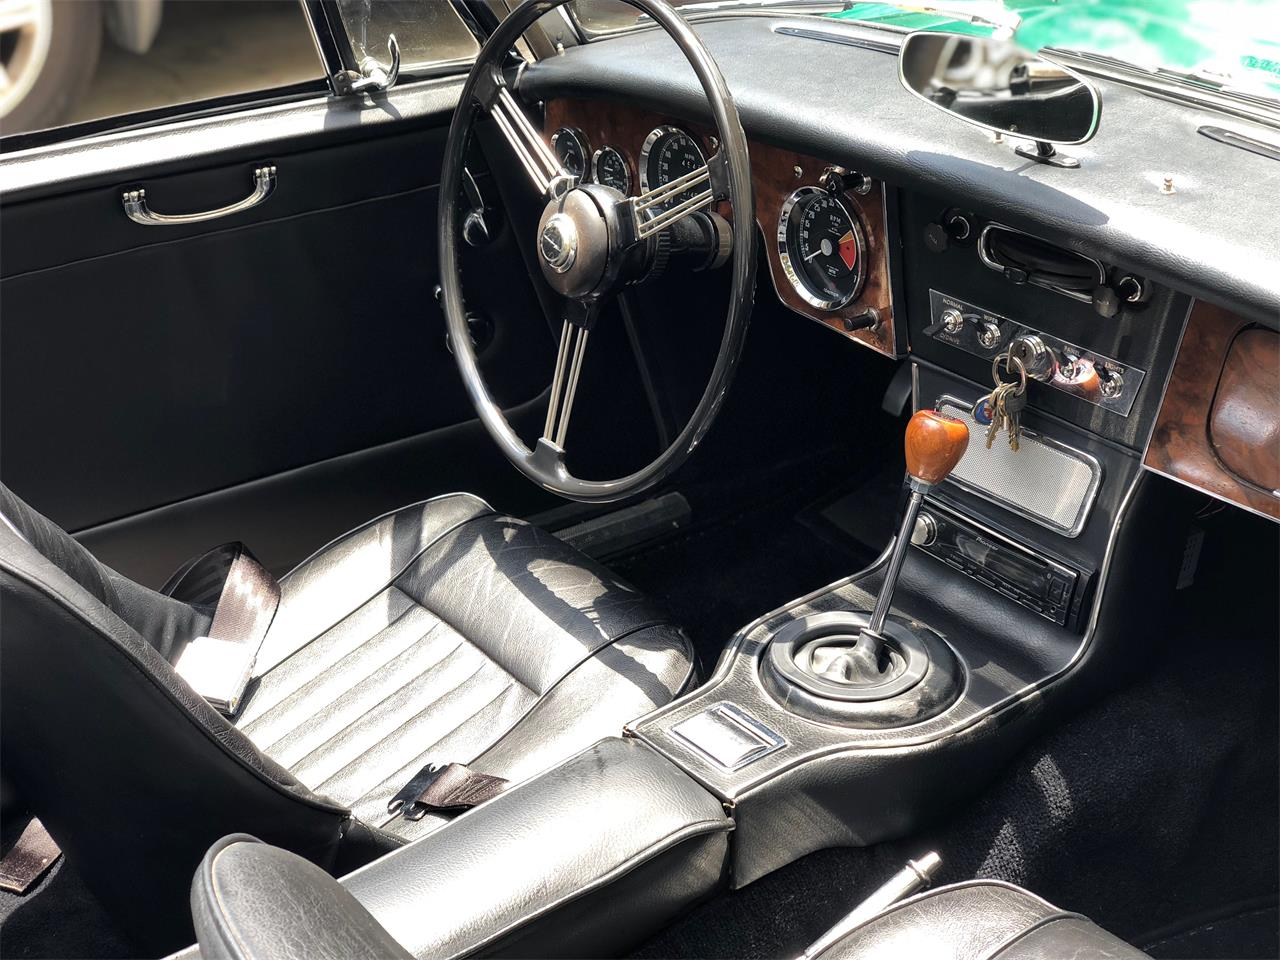 Large Picture of Classic '67 Austin-Healey 3000 Mark III located in California - $75,000.00 Offered by a Private Seller - NLOV